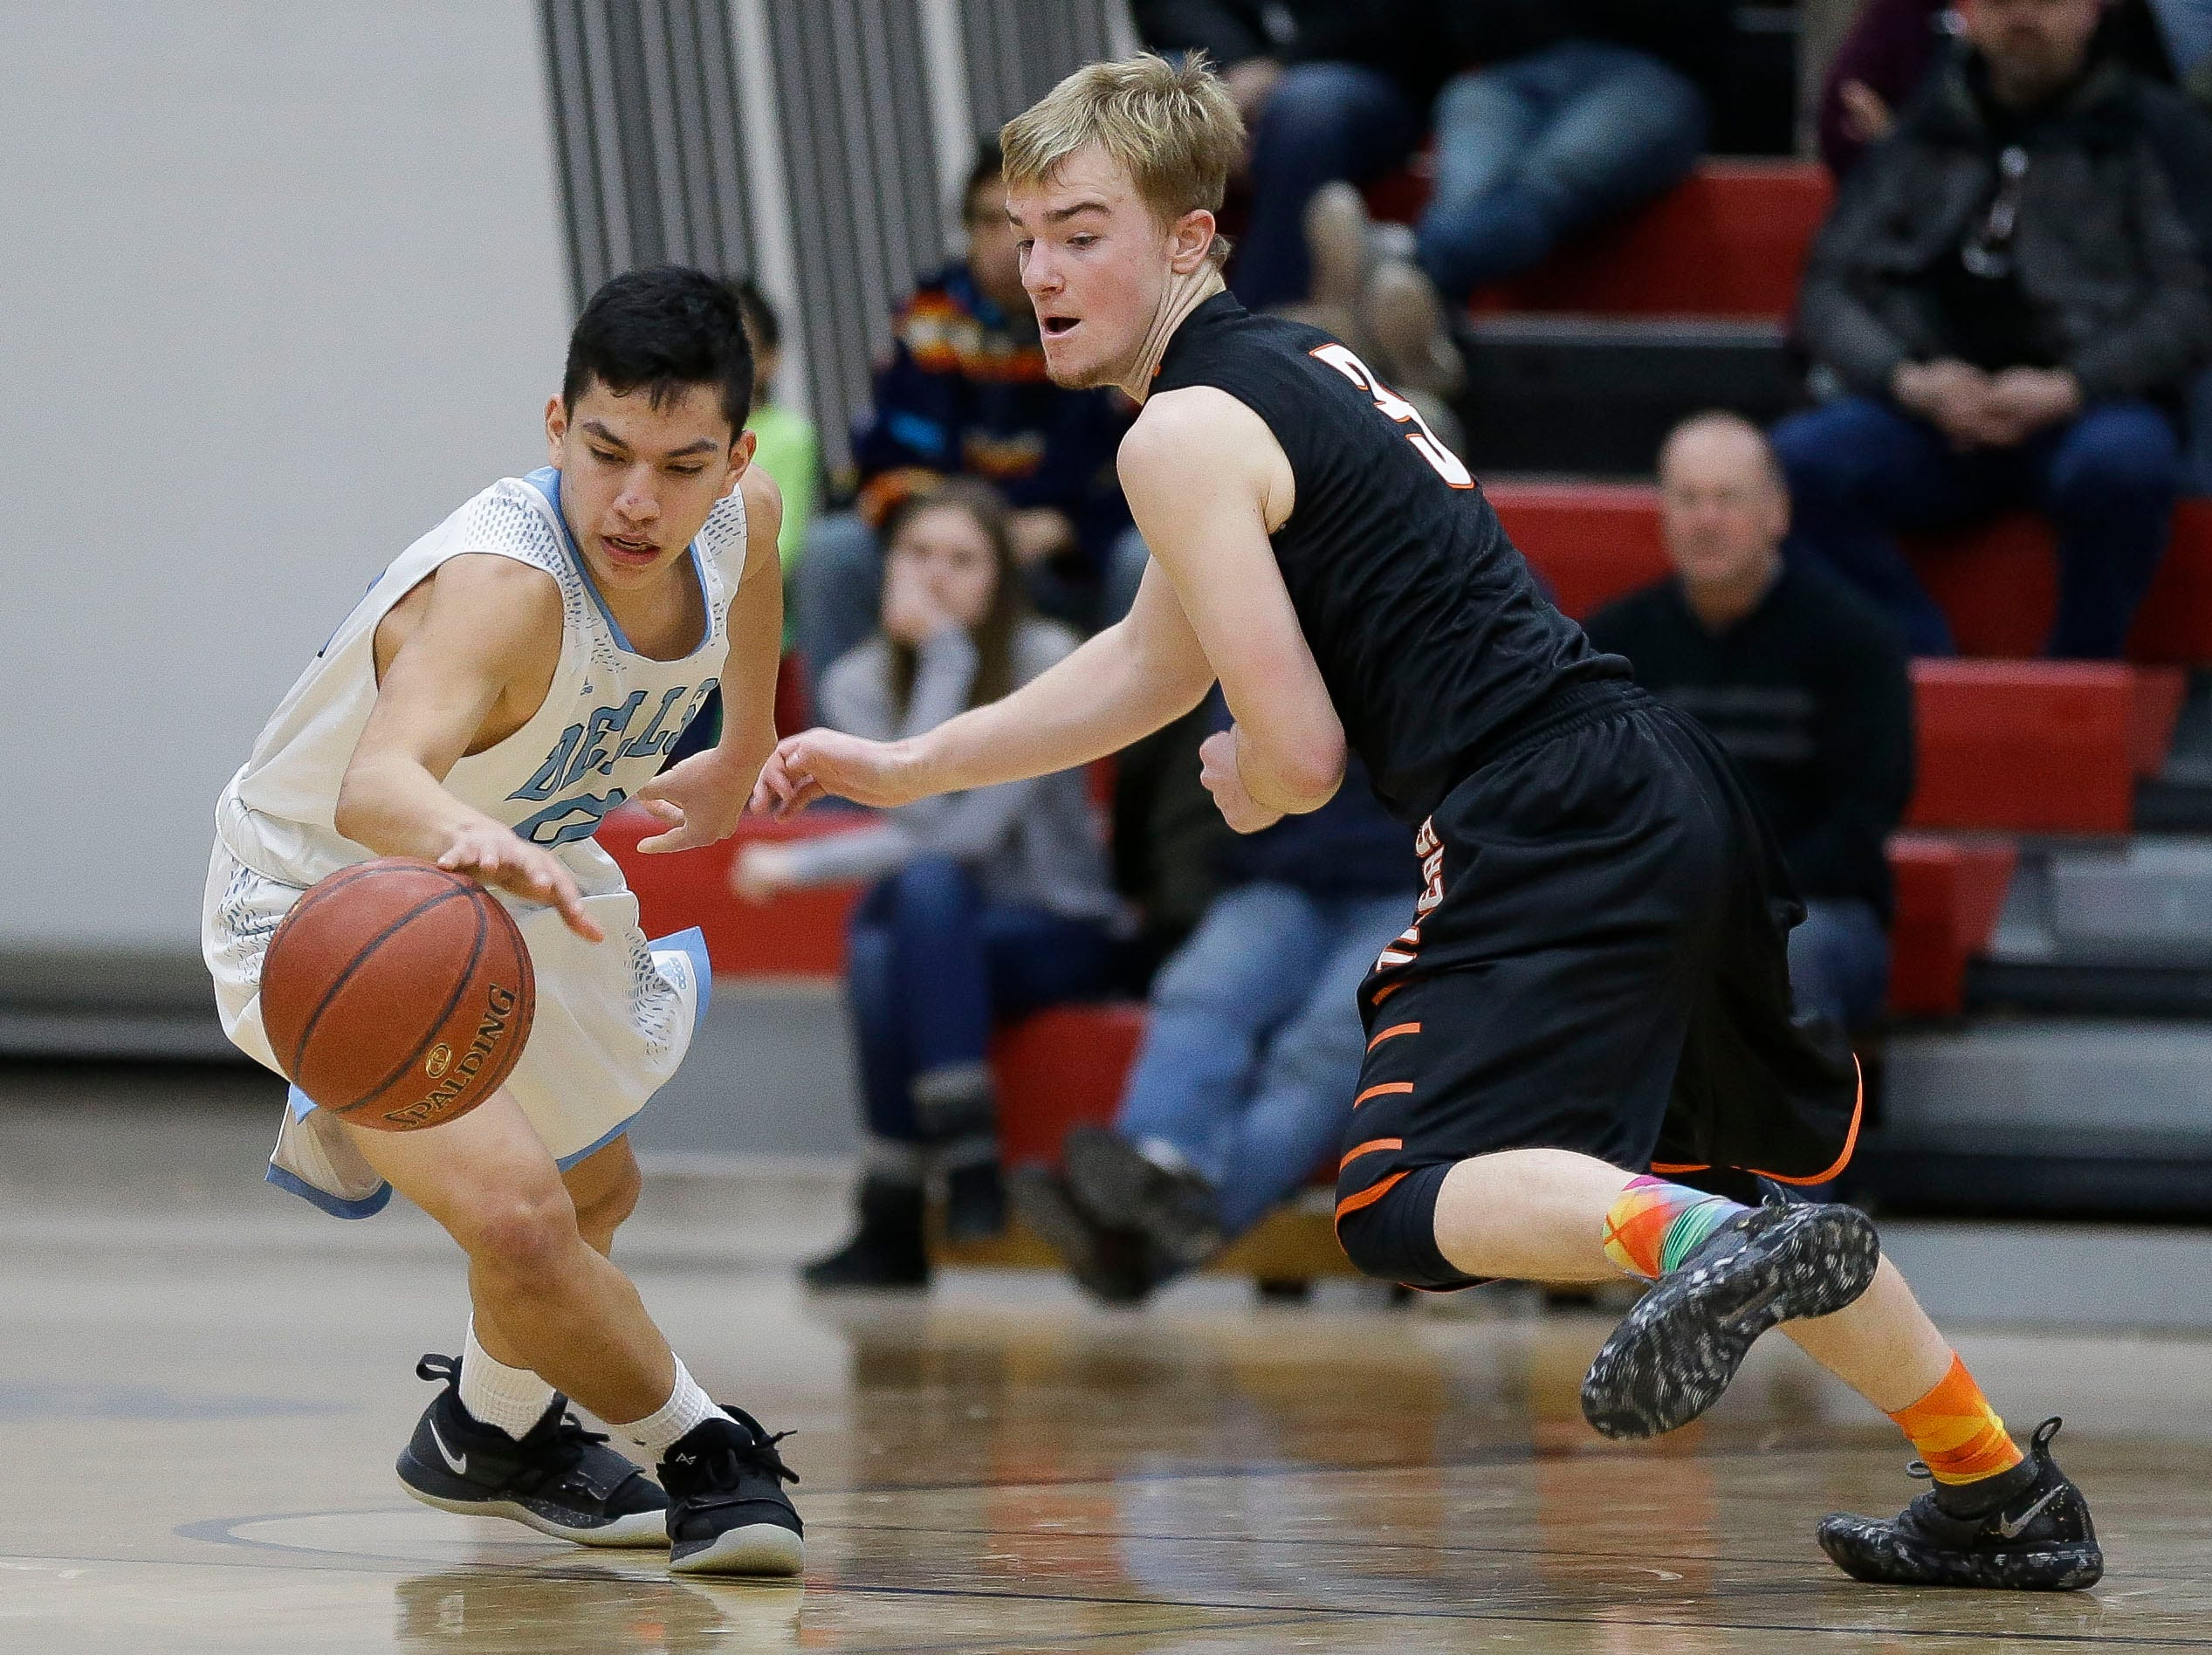 Stratford's Okley Wrensch (3) defends Wisconsin Dells' Bryson Funmaker (10) in a Division 3 sectional semifinal on Thursday, March 7, 2019, at Stevens Point Area High School in Stevens Point, Wis. Tork Mason/USA TODAY NETWORK-Wisconsin